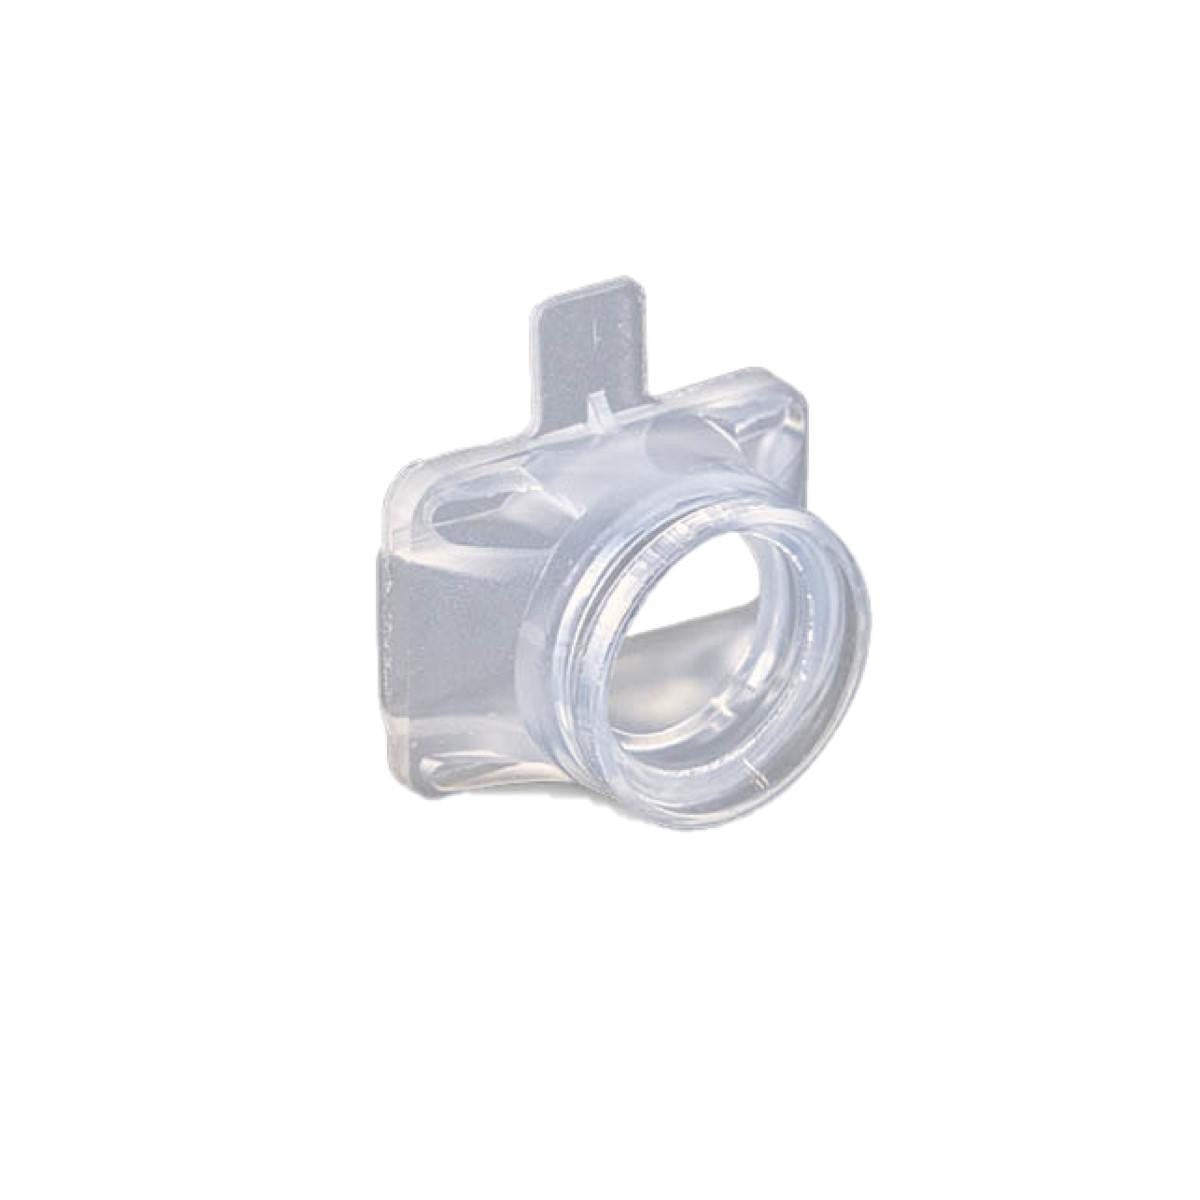 SleepStyle Chamber Outlet Seal